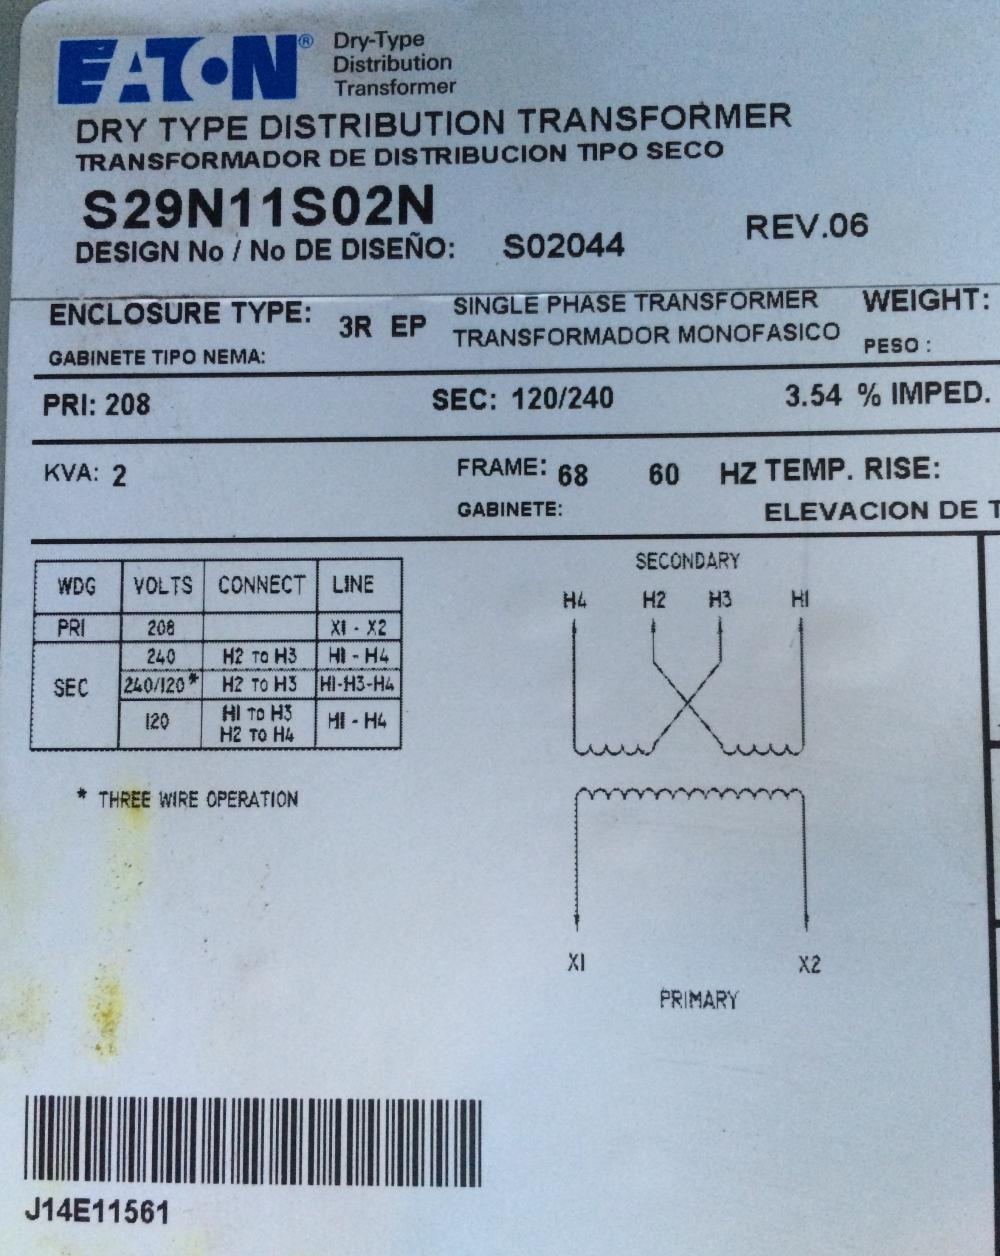 Transformer Wiring Question Advance Diagram Name Eaton Data Plate Views 1114 Size 1592 Kb